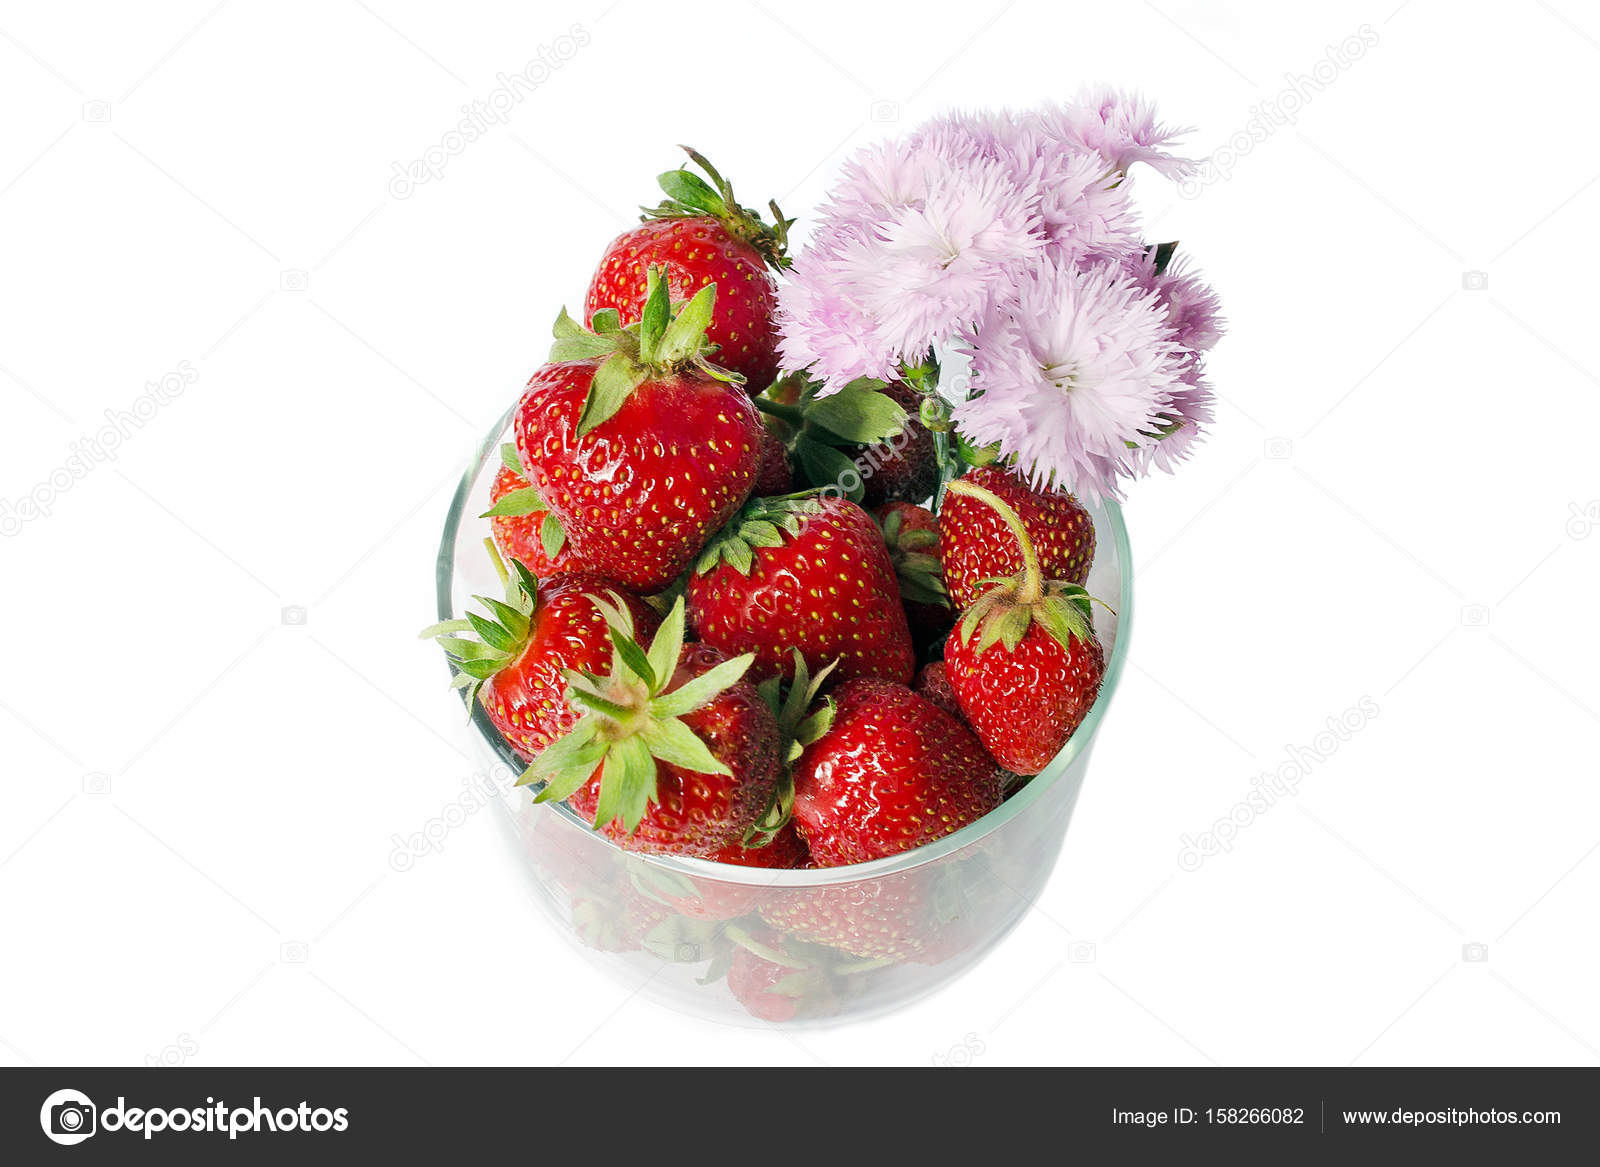 Strawberry with pink flowers in a glass cup on a white background strawberry with pink flowers in a glass cup on a white background isolate view mightylinksfo